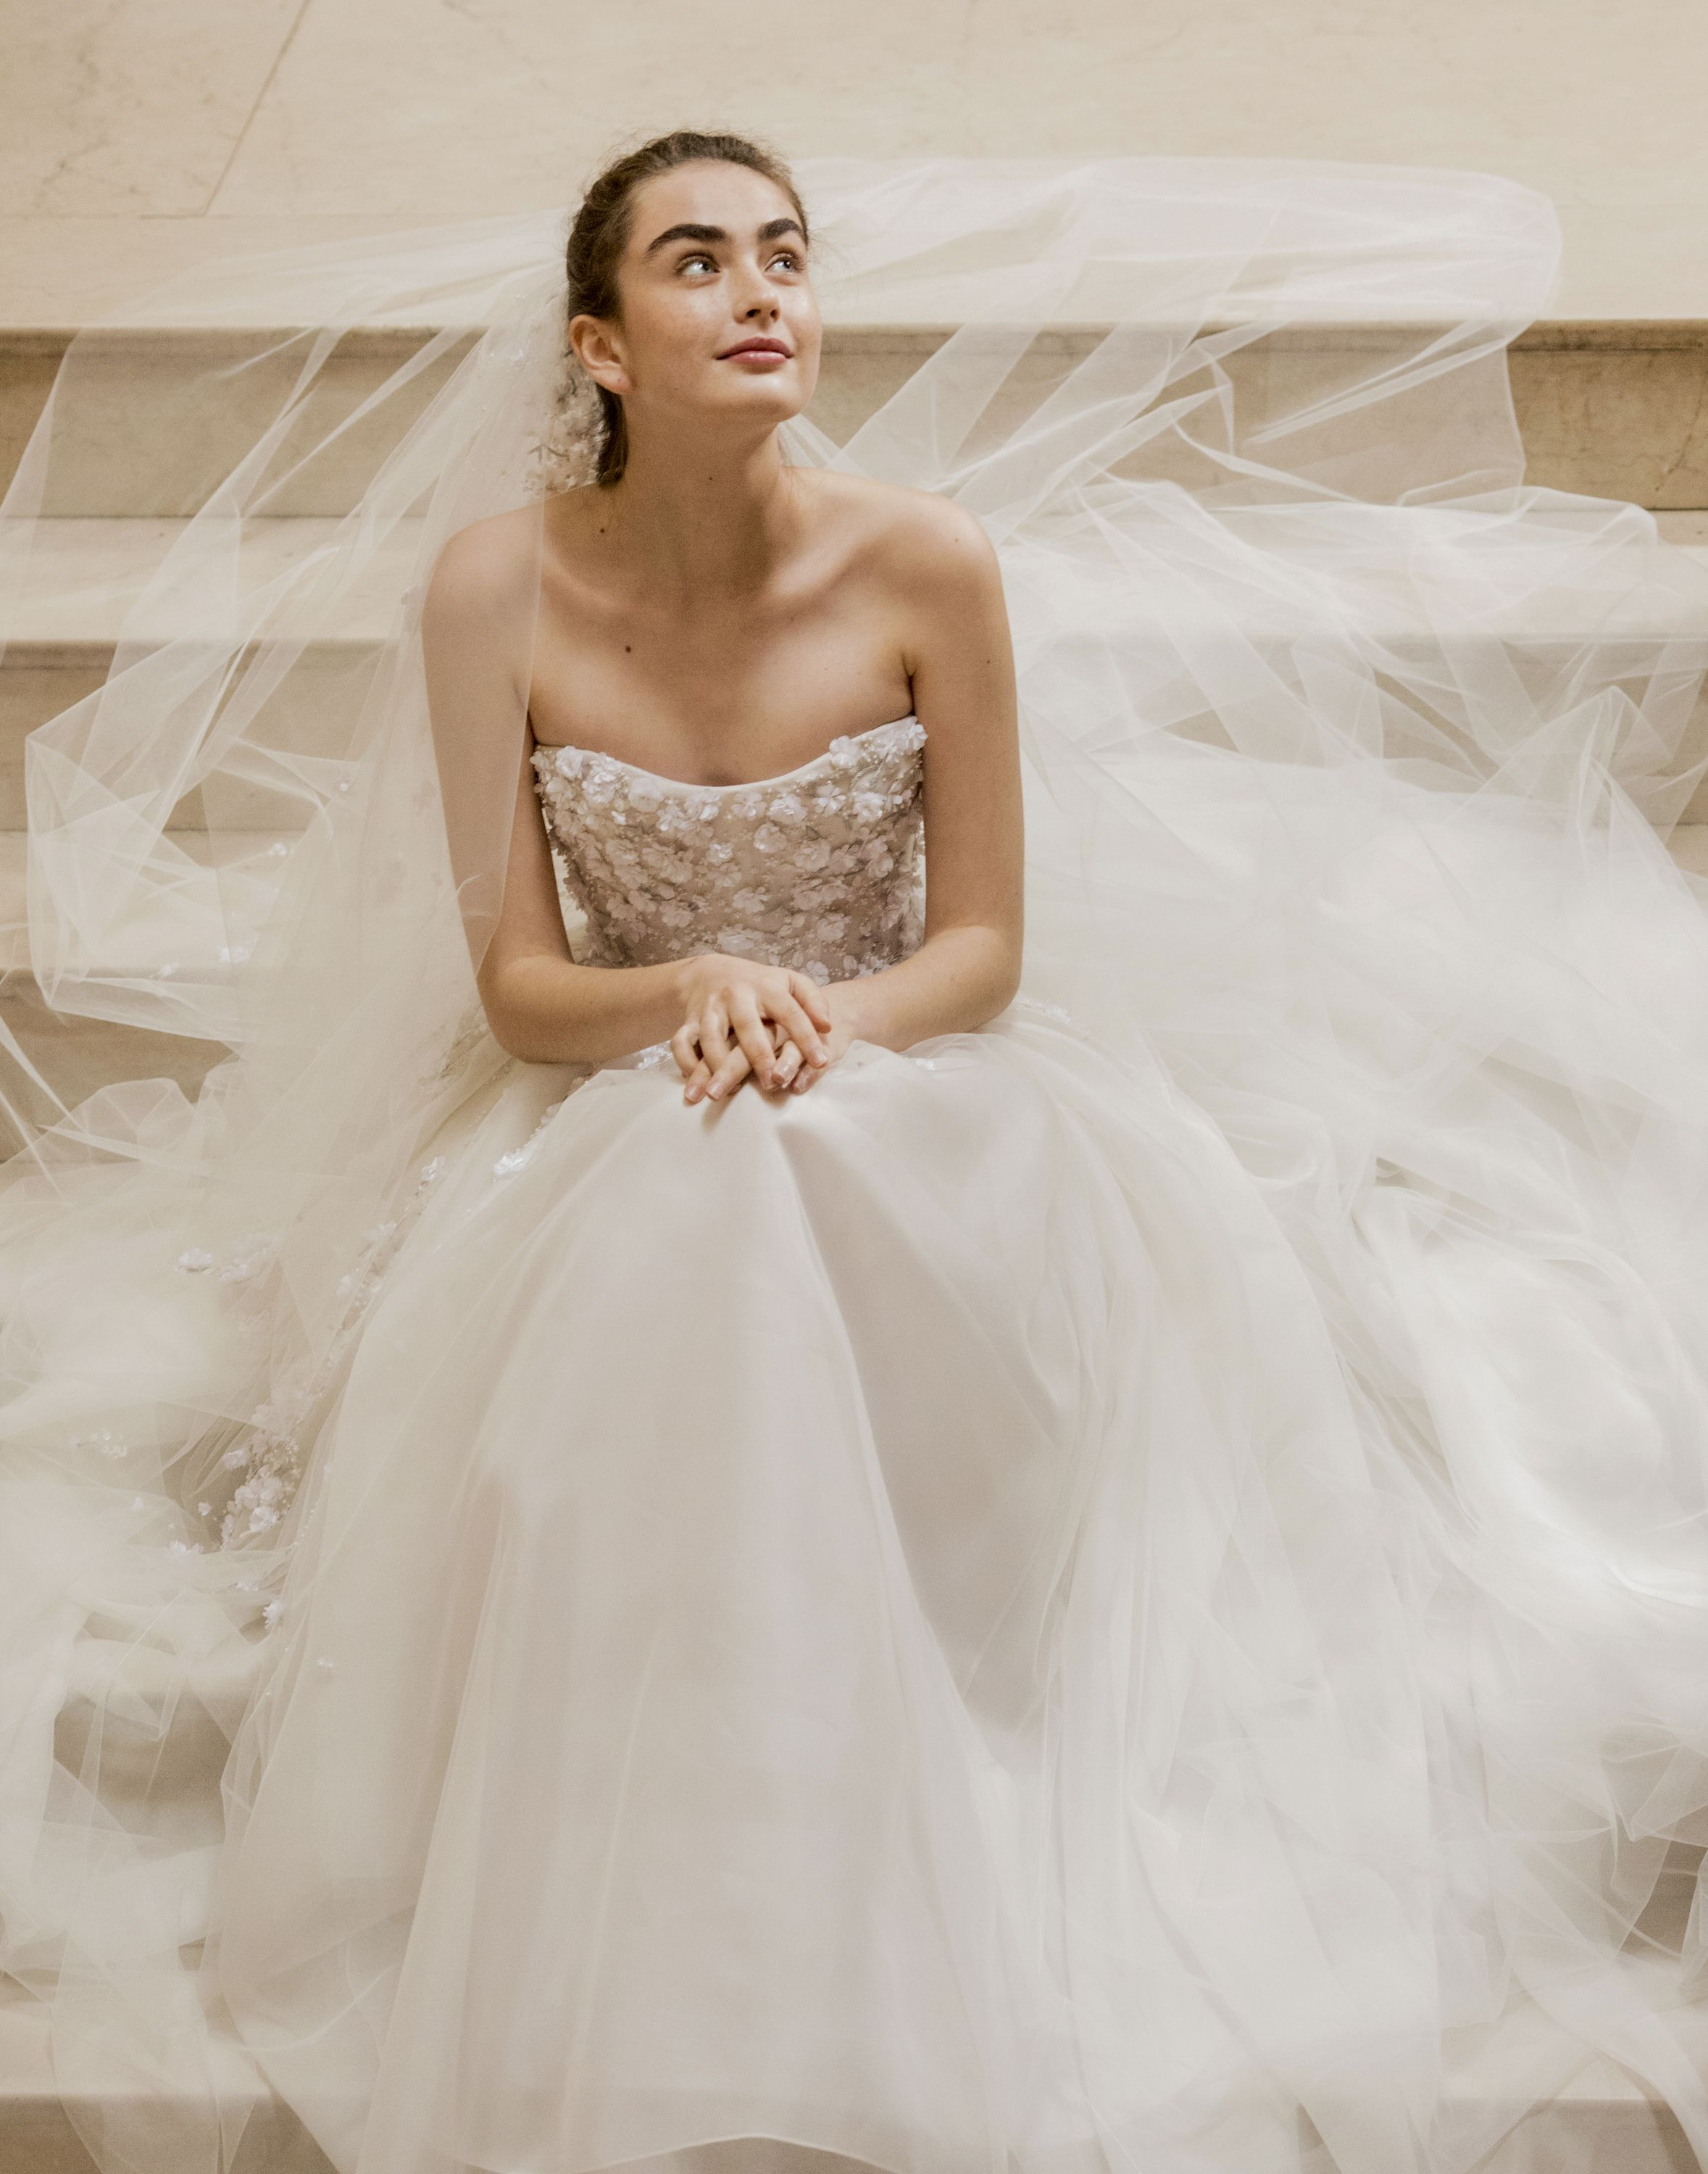 cd8c482decfc Strapless embellished Hadley gown with tulle skirt from the Carolina  Herrera Spring 2019 Bridal Collection. #CarolinaHerreraBride